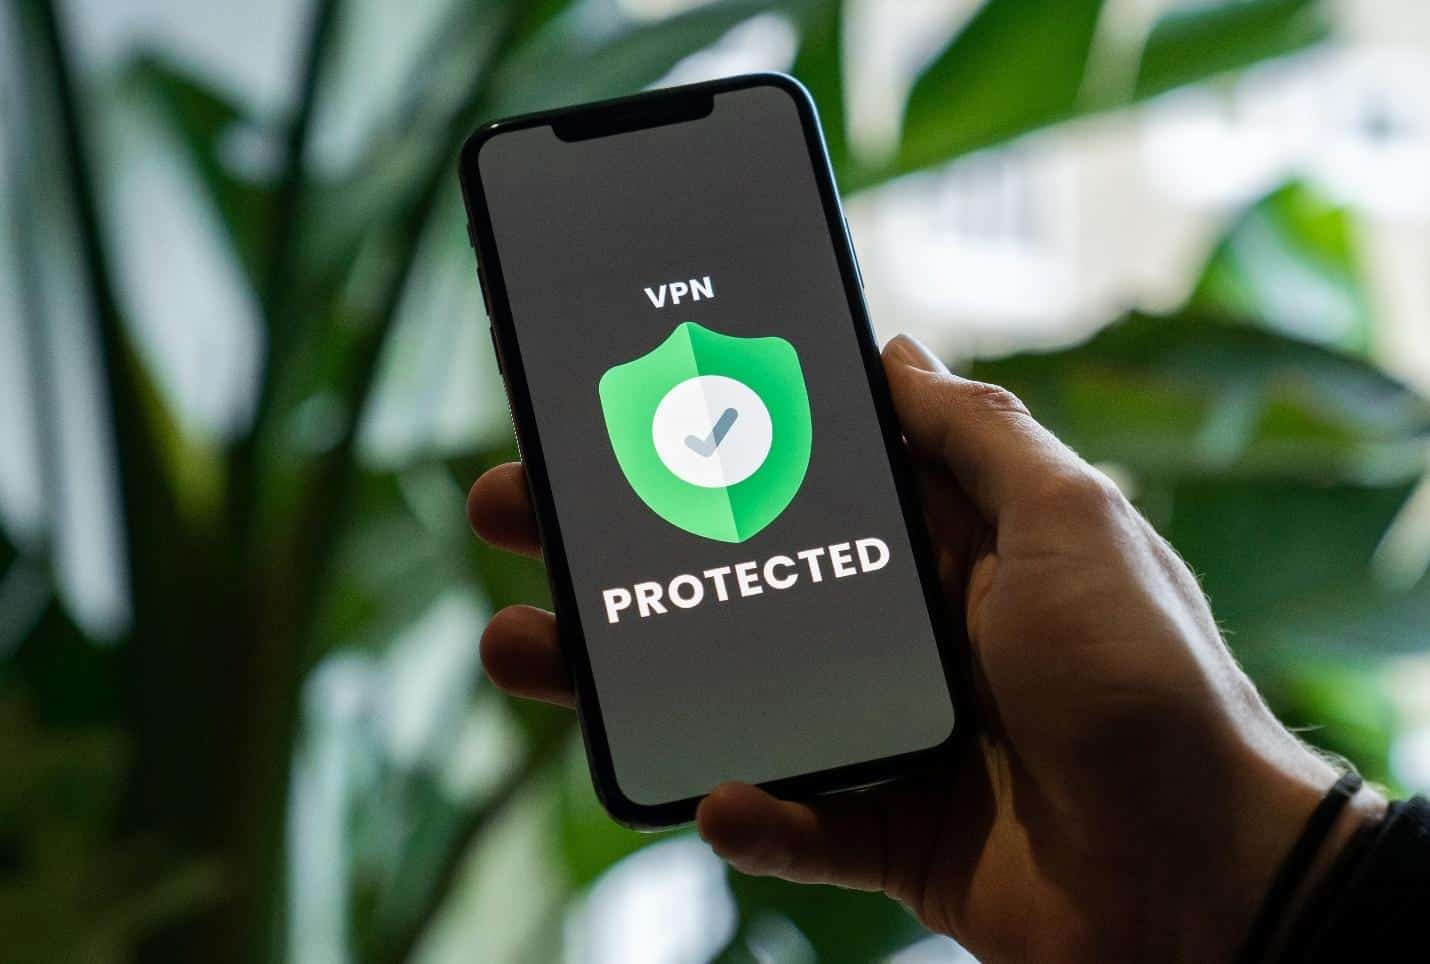 Top VPN to use in Singapore, Top 10 Best VPN Singapore, The Most Popular VPNs of 2021, which are the Best VPNs in Singapore, Which VPN to use in Singapore?, Is it illegal to use VPN in Singapore?, Can I use ExpressVPN in Singapore?, Which free VPN has Singapore?